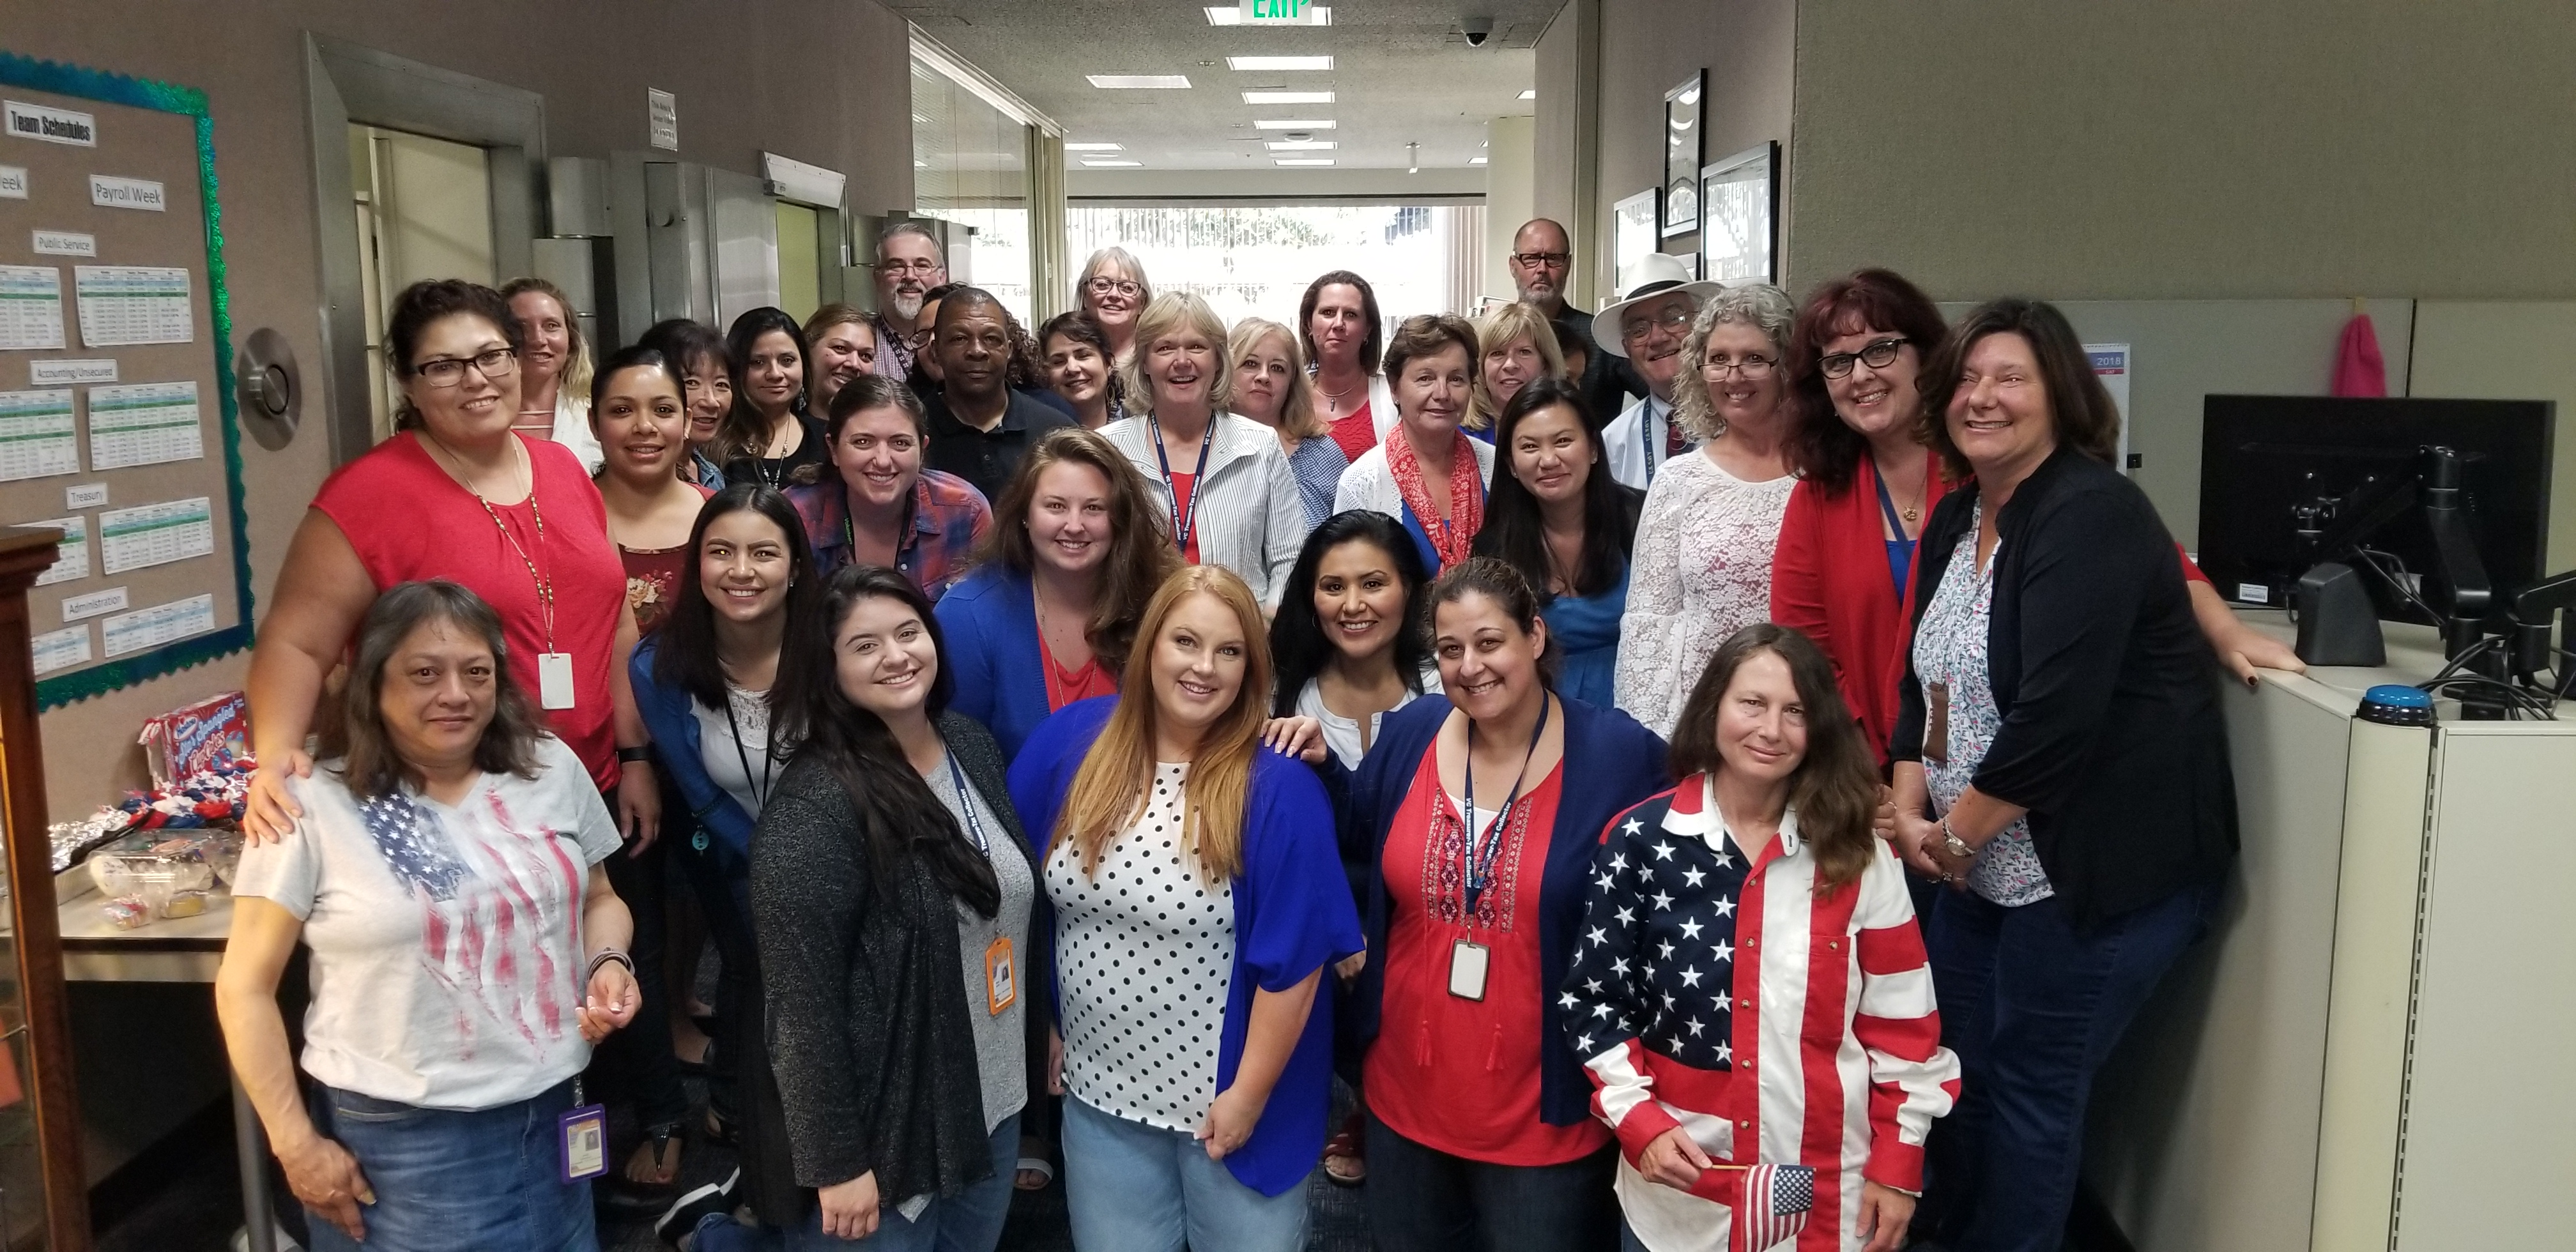 STAFF CELEBRATE THE 4TH OF JULY